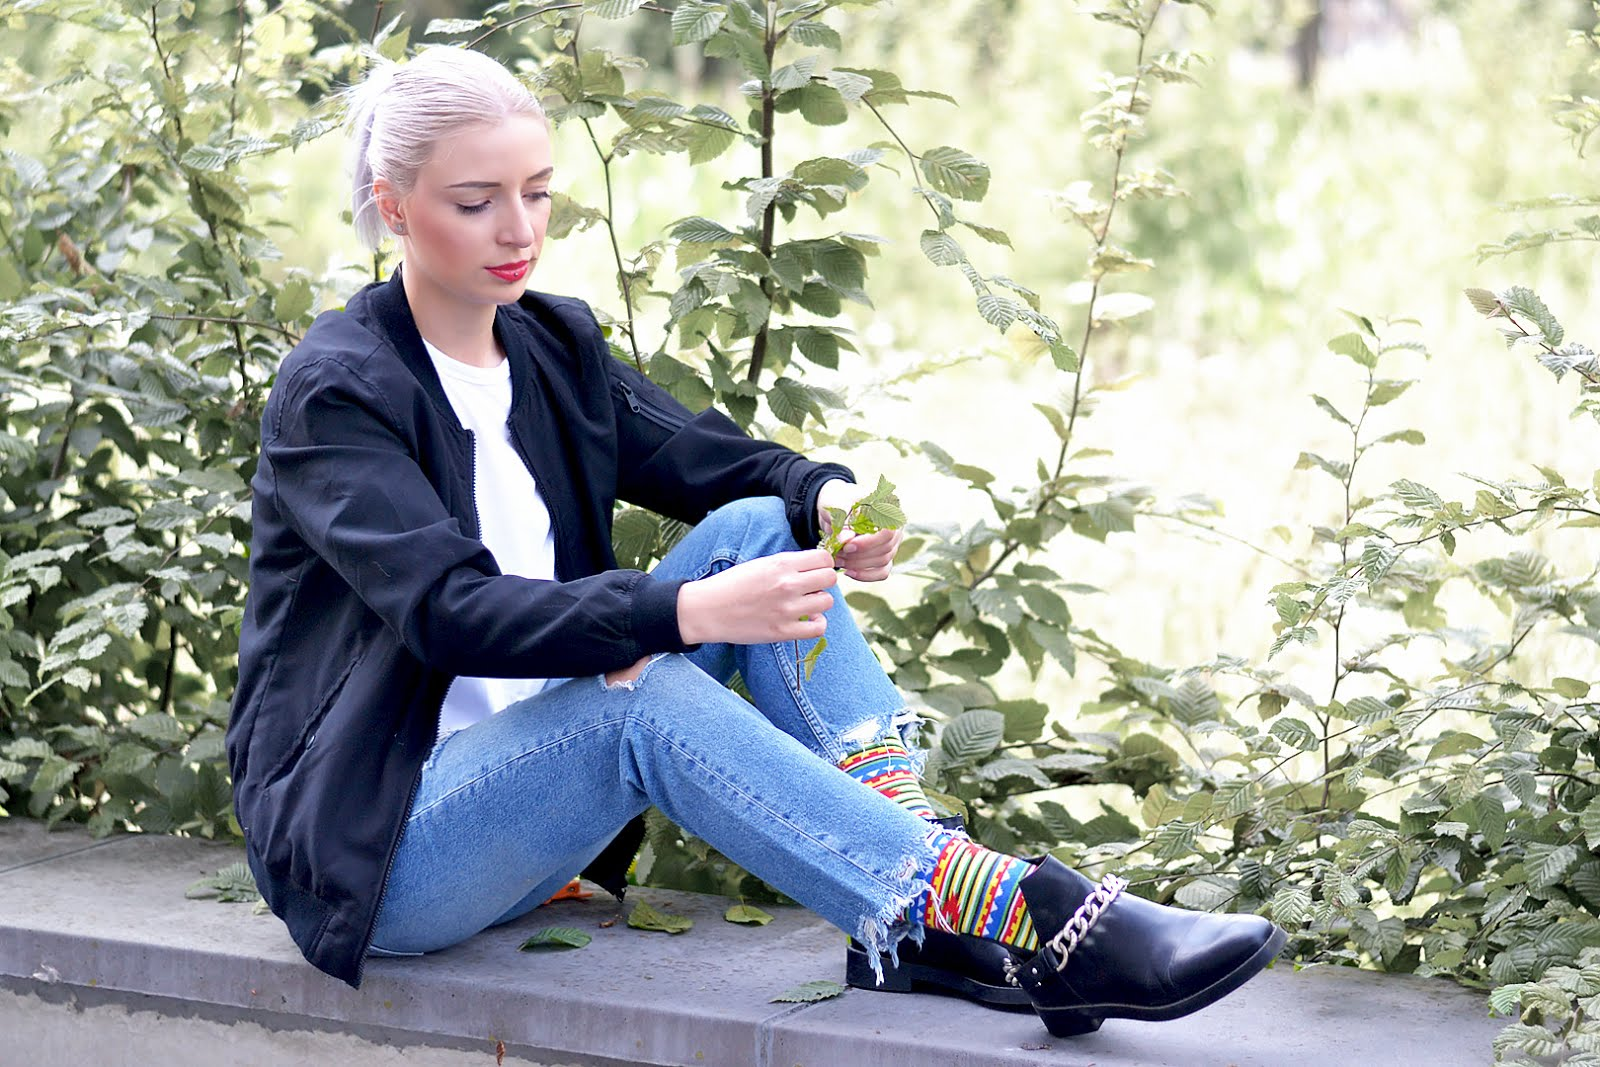 Colorful socks, sammy icon, black bomber, ripped jeans, chain boots, outfit